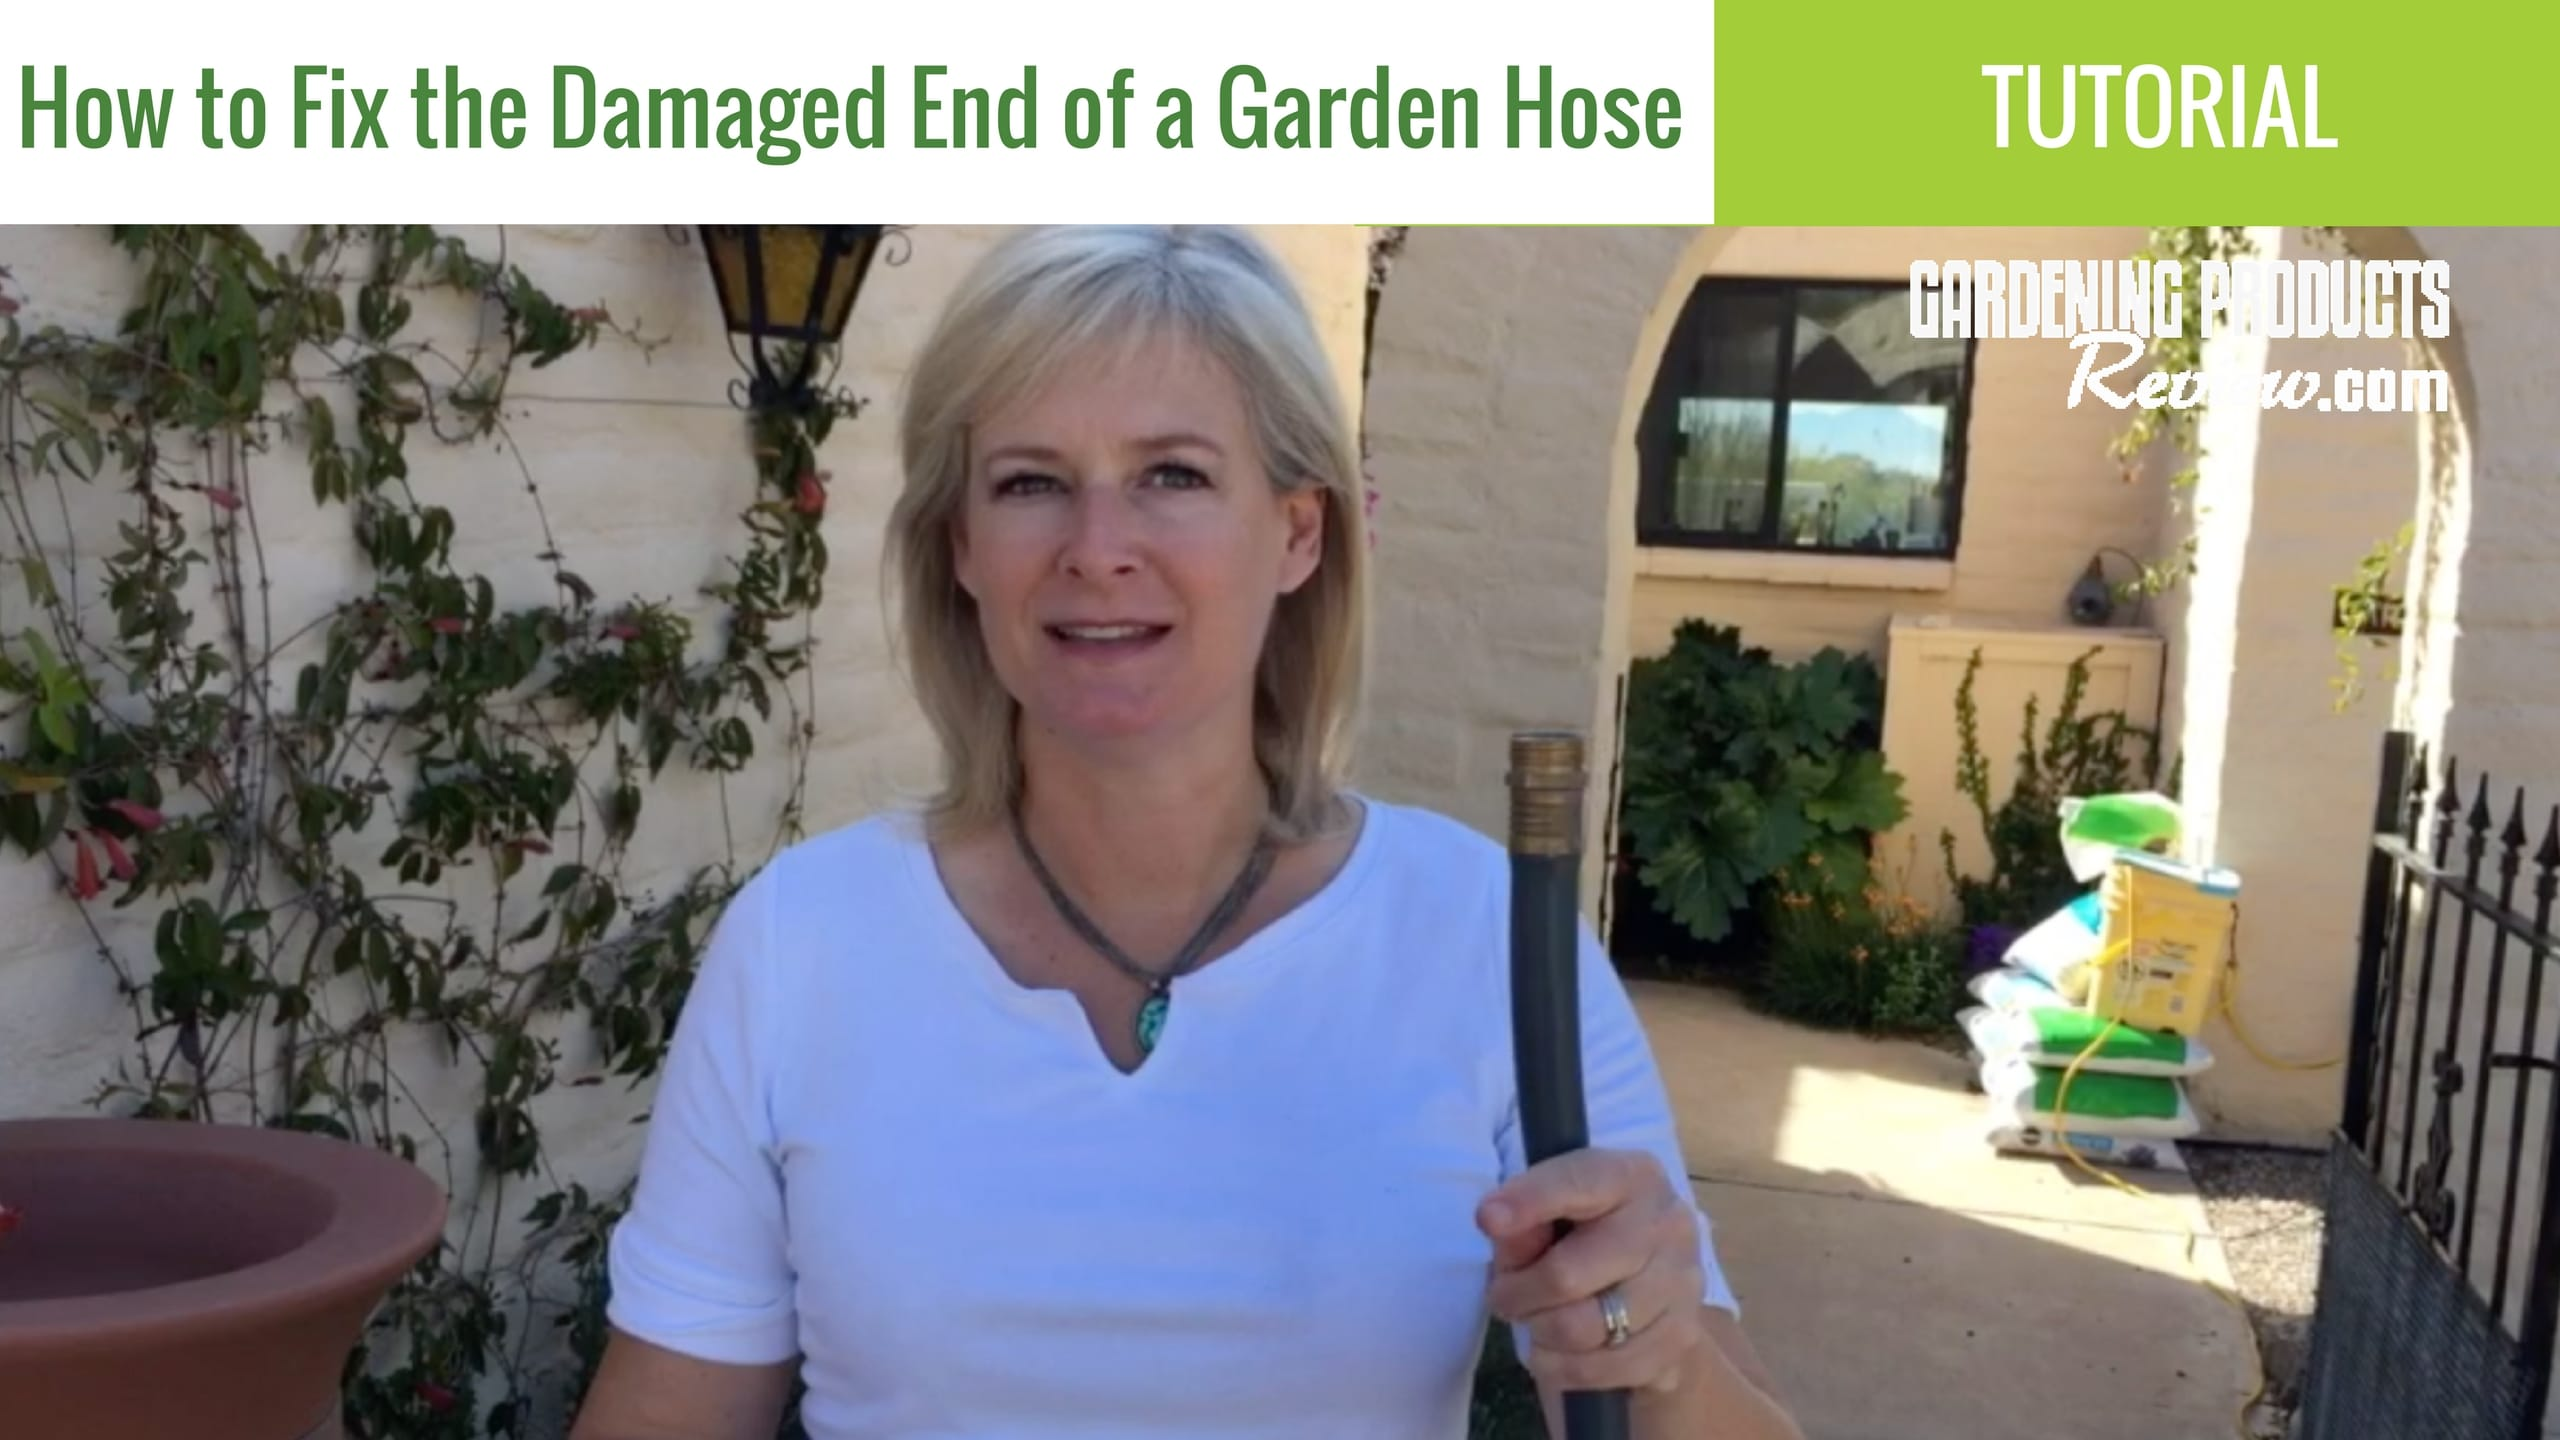 How to Repair the Damaged End of a Garden Hose - Gardening Products Review  sc 1 st  Gardening Products Review & How to Repair the Damaged End of a Garden Hose - Gardening Products ...